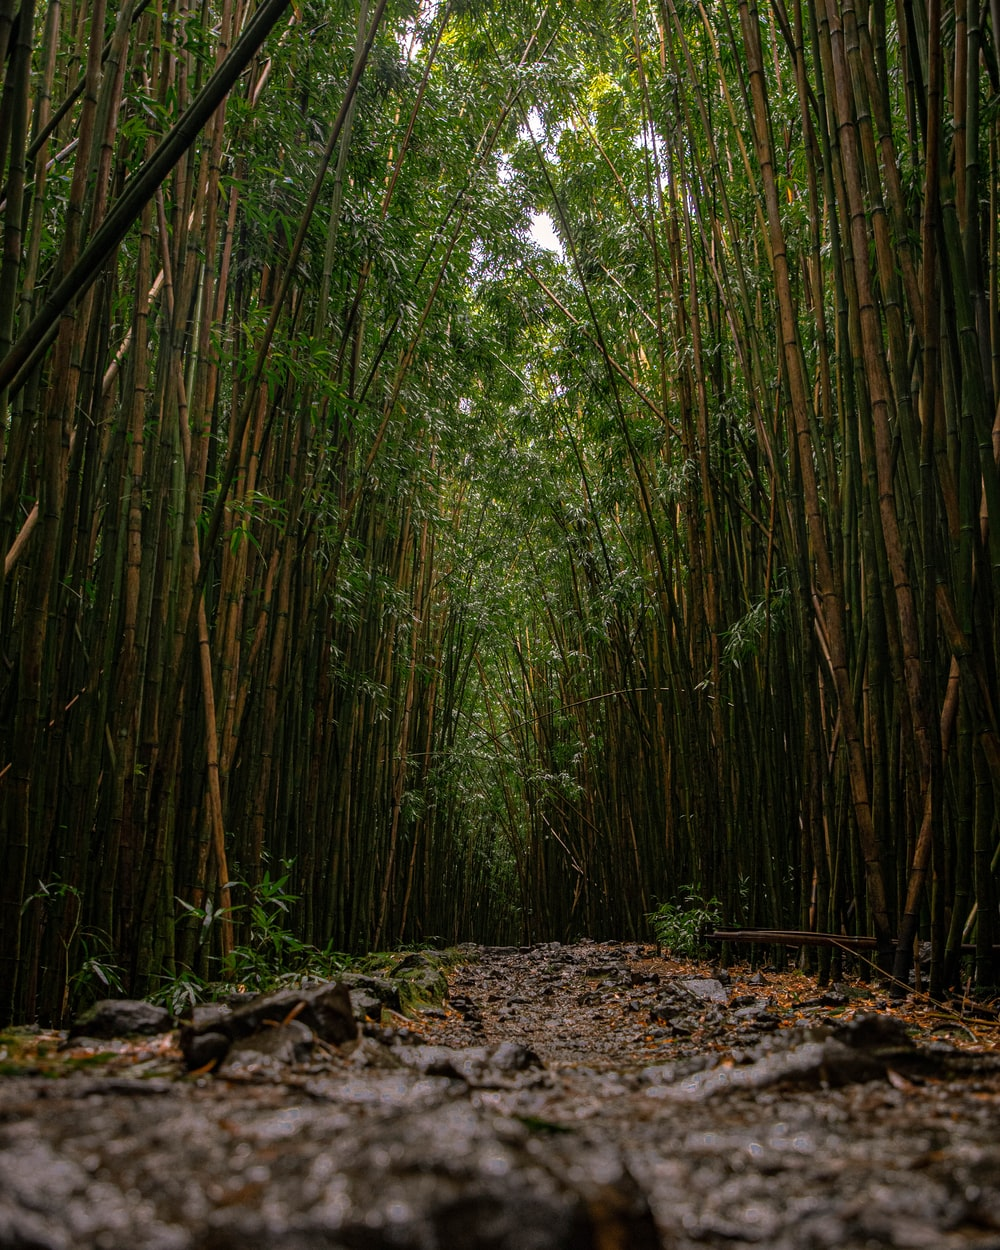 green bamboo trees during daytime